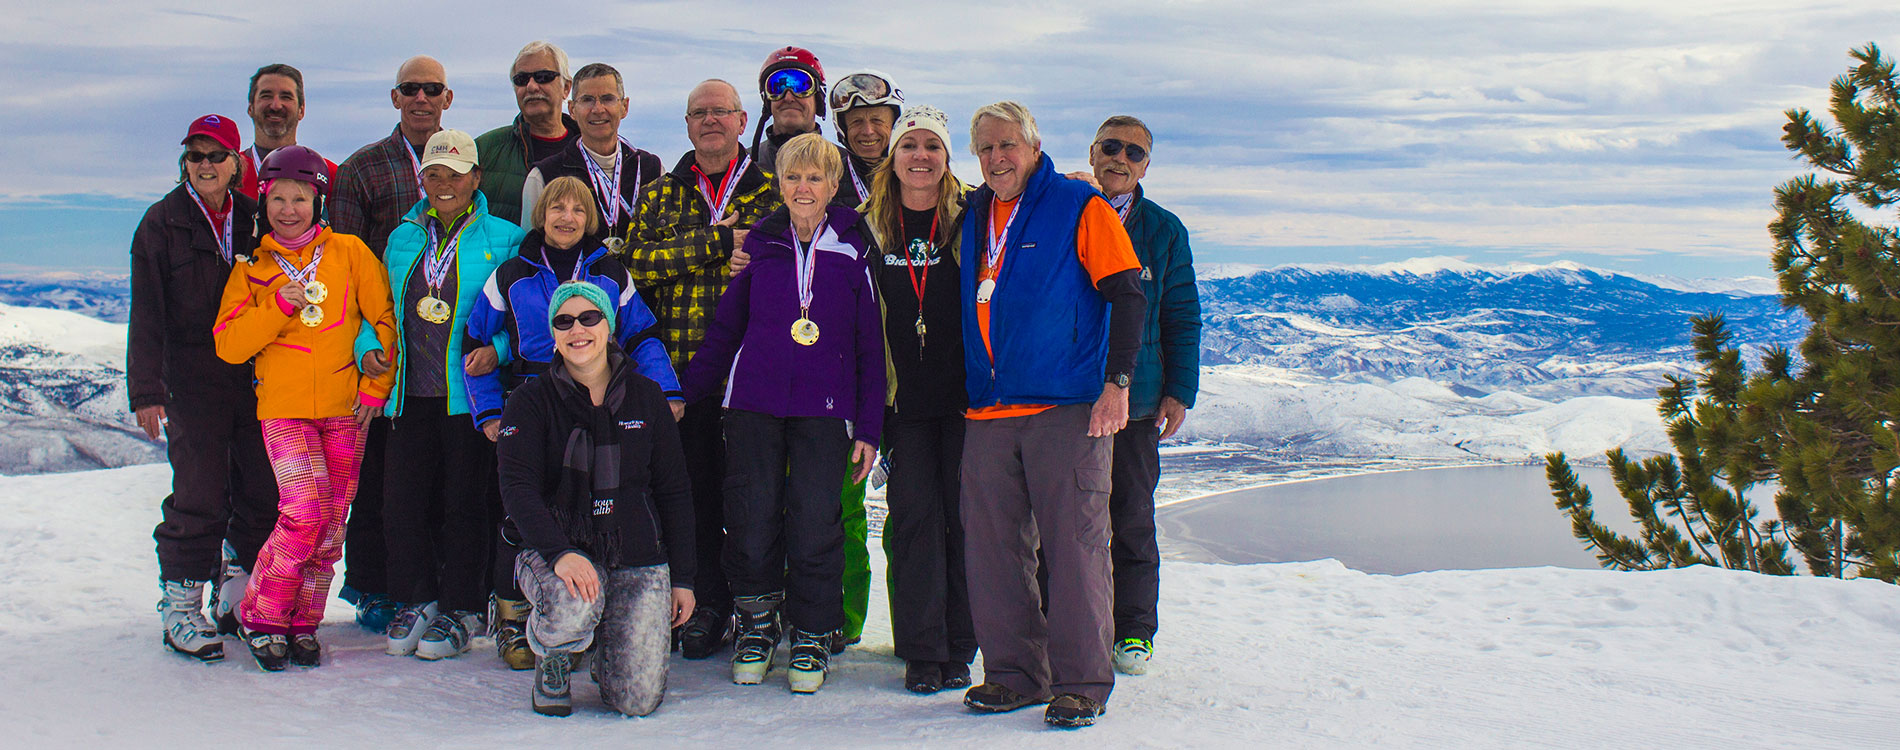 Group of seniors on ski mountain with Lake Tahoe in background